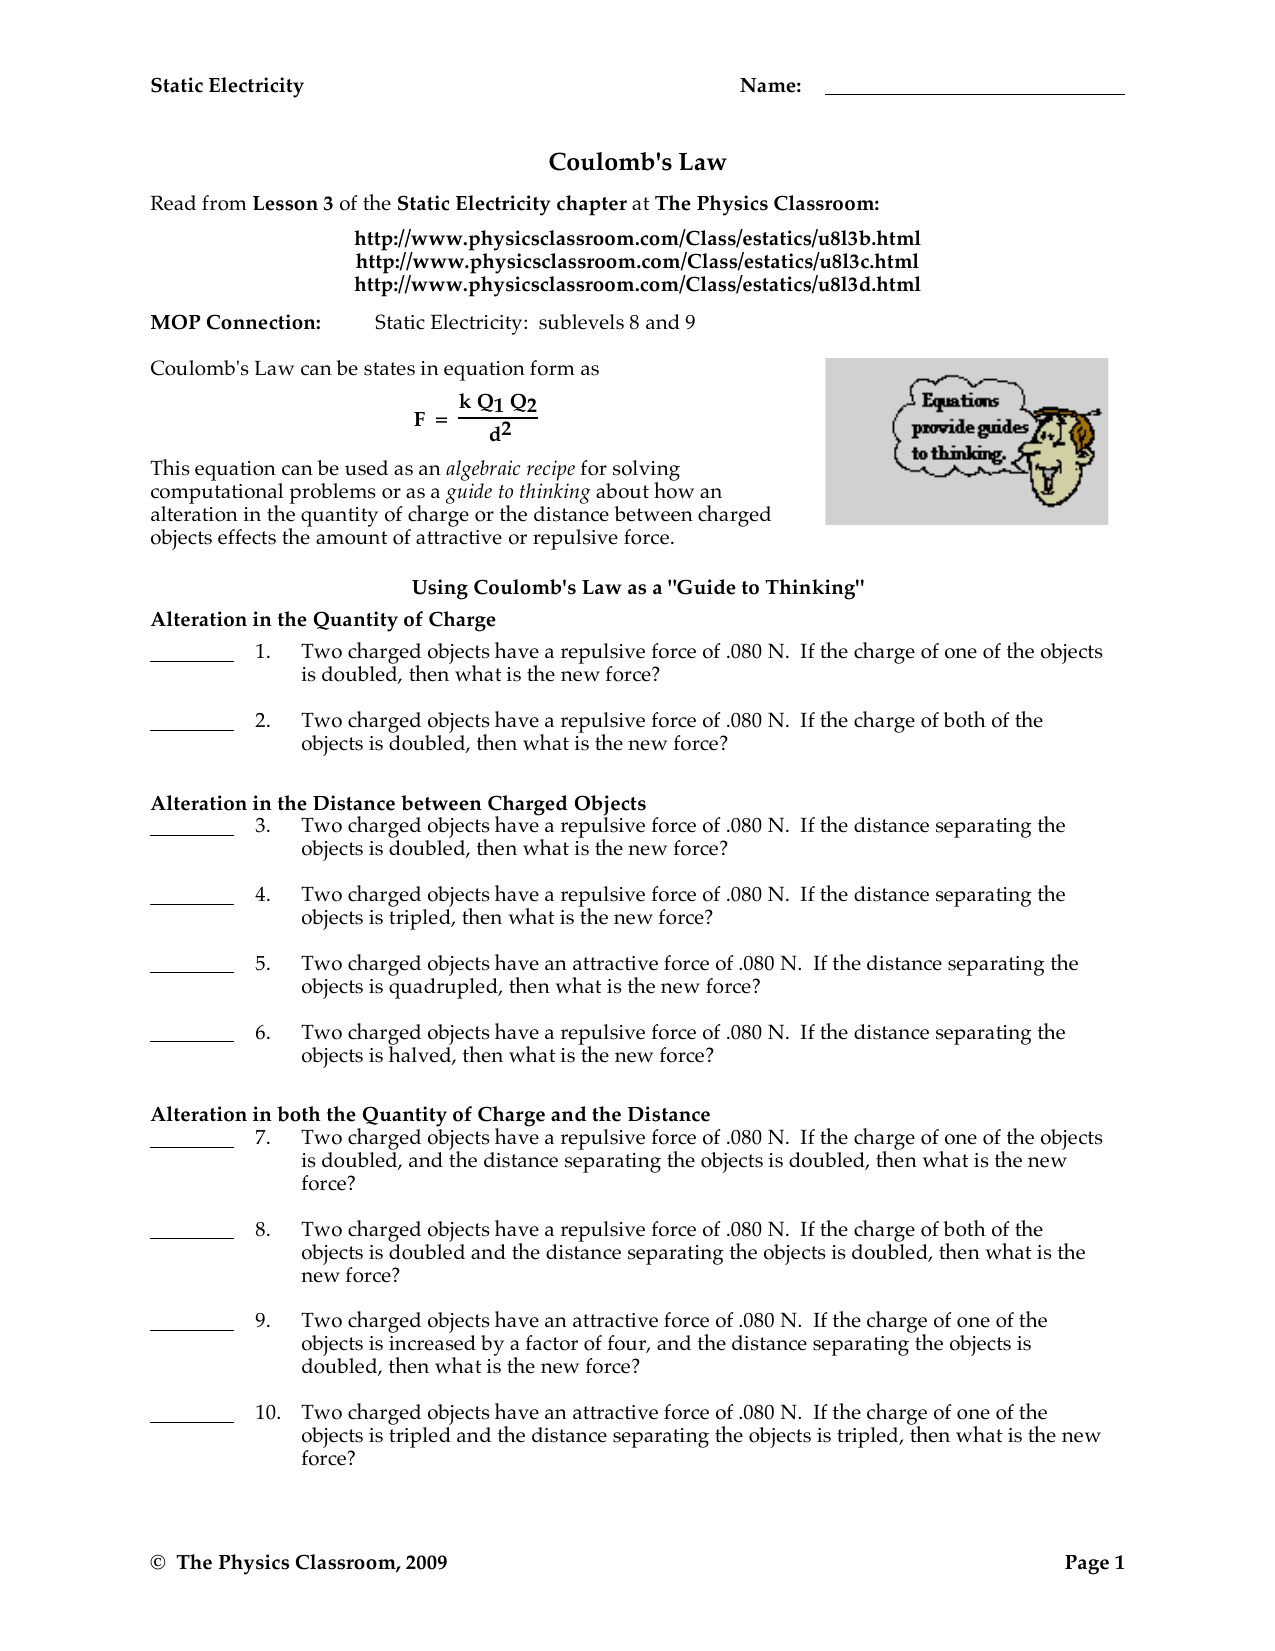 Doubling Recipes Worksheet Answers